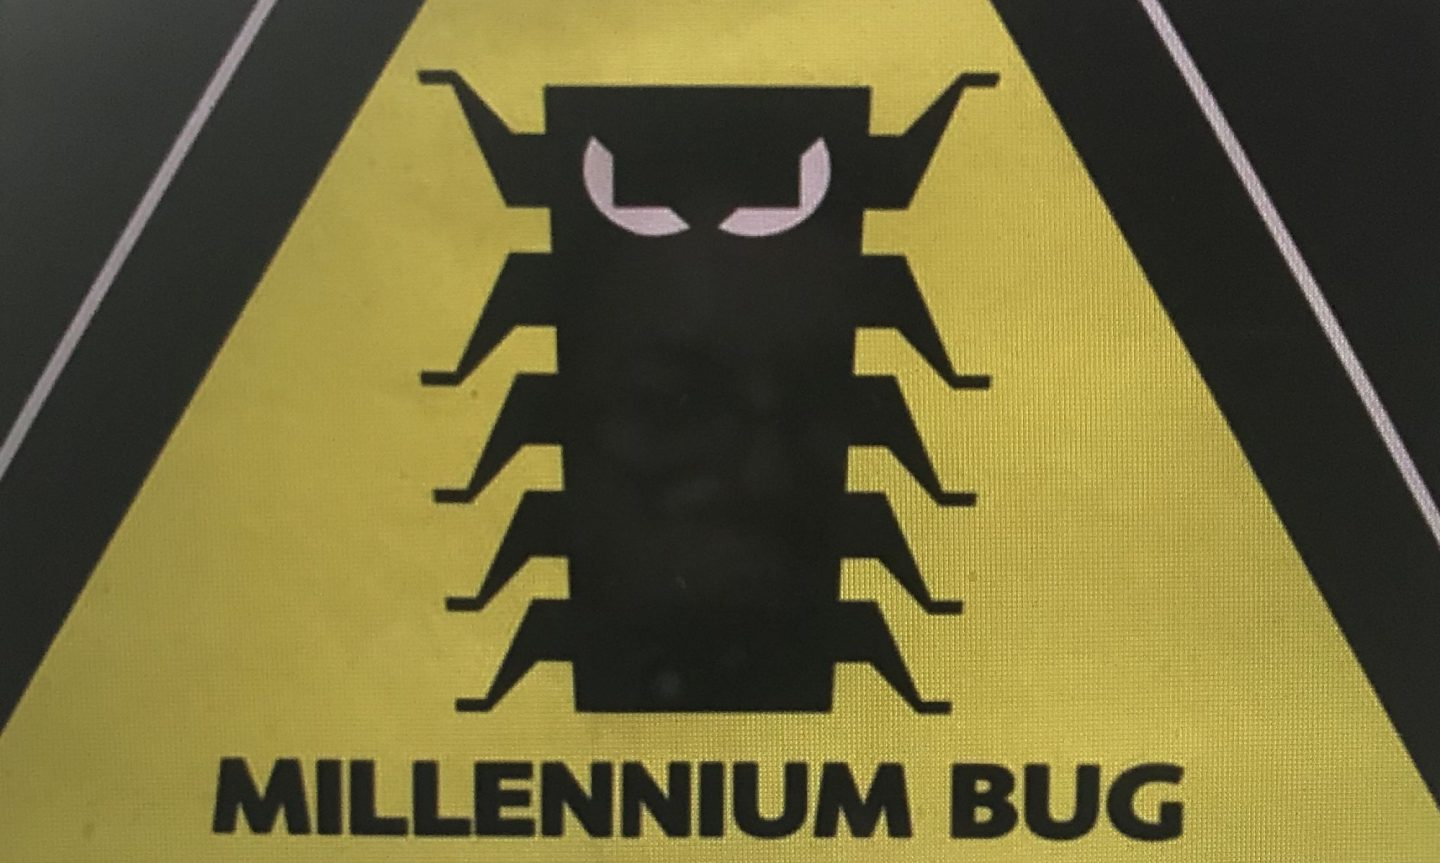 Millennium Bug Prime Suspect in Death of Common Courtesy